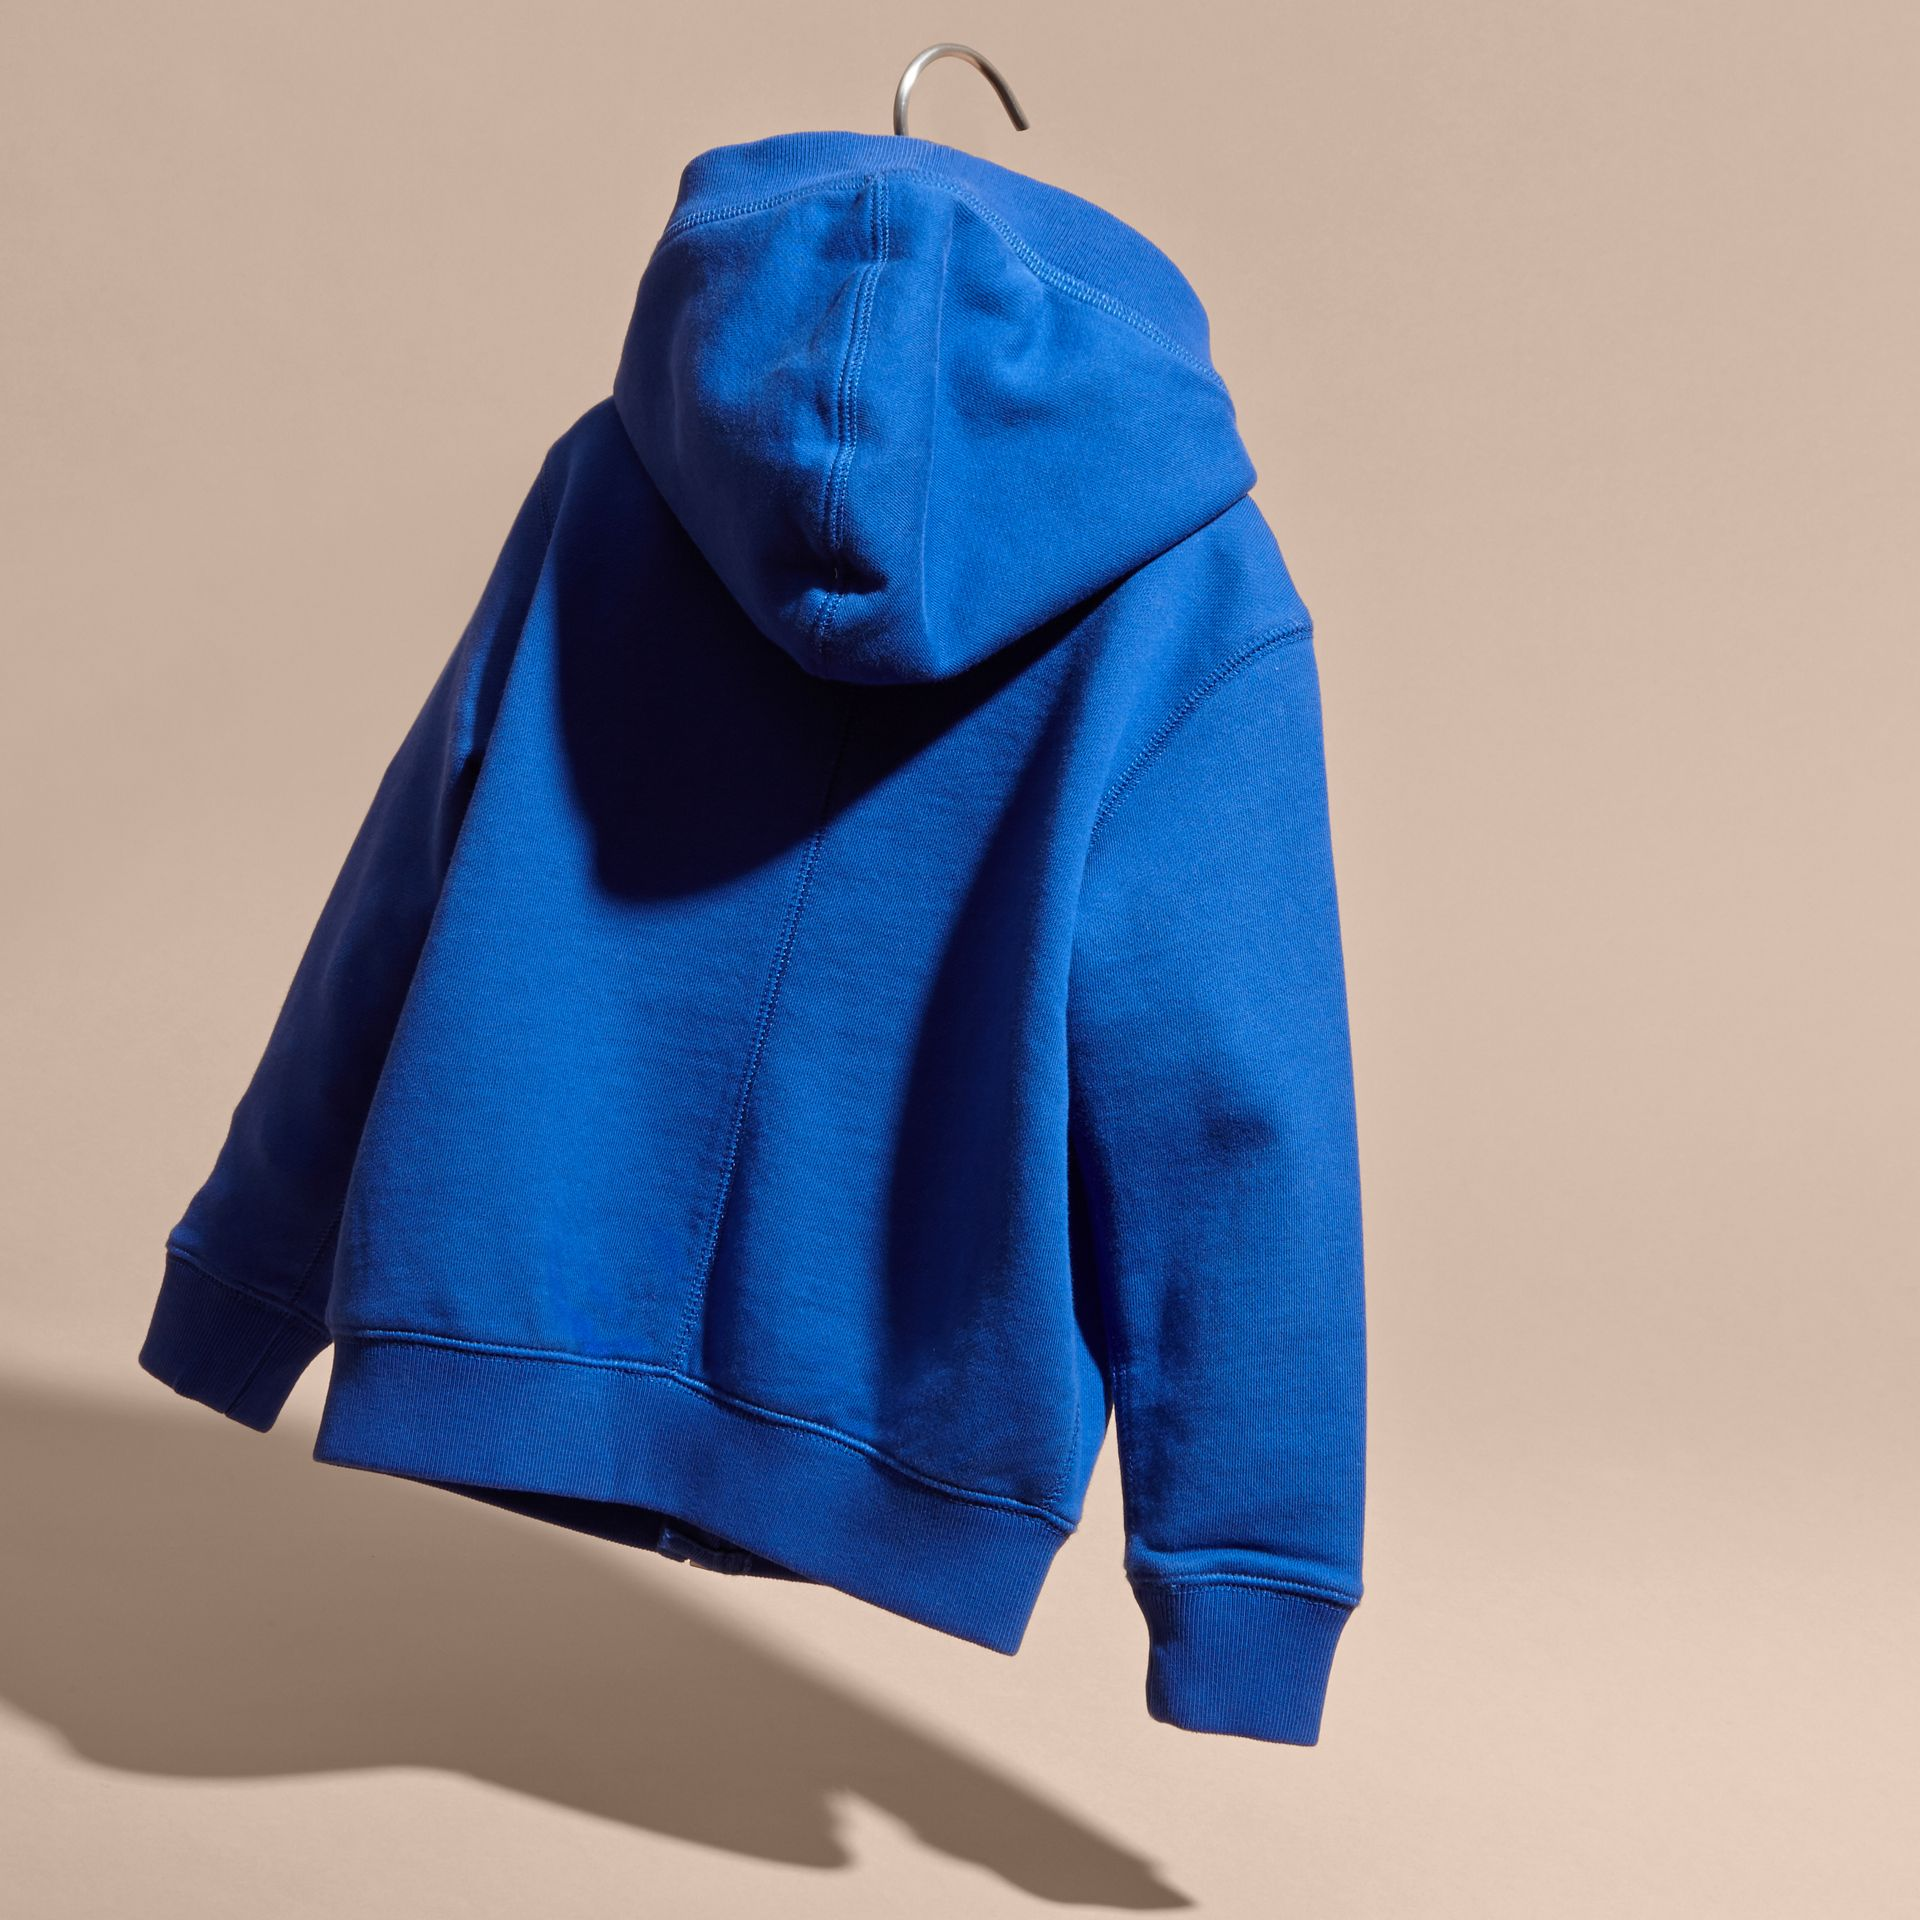 Brilliant blue Hooded Cotton Top Brilliant Blue - gallery image 4